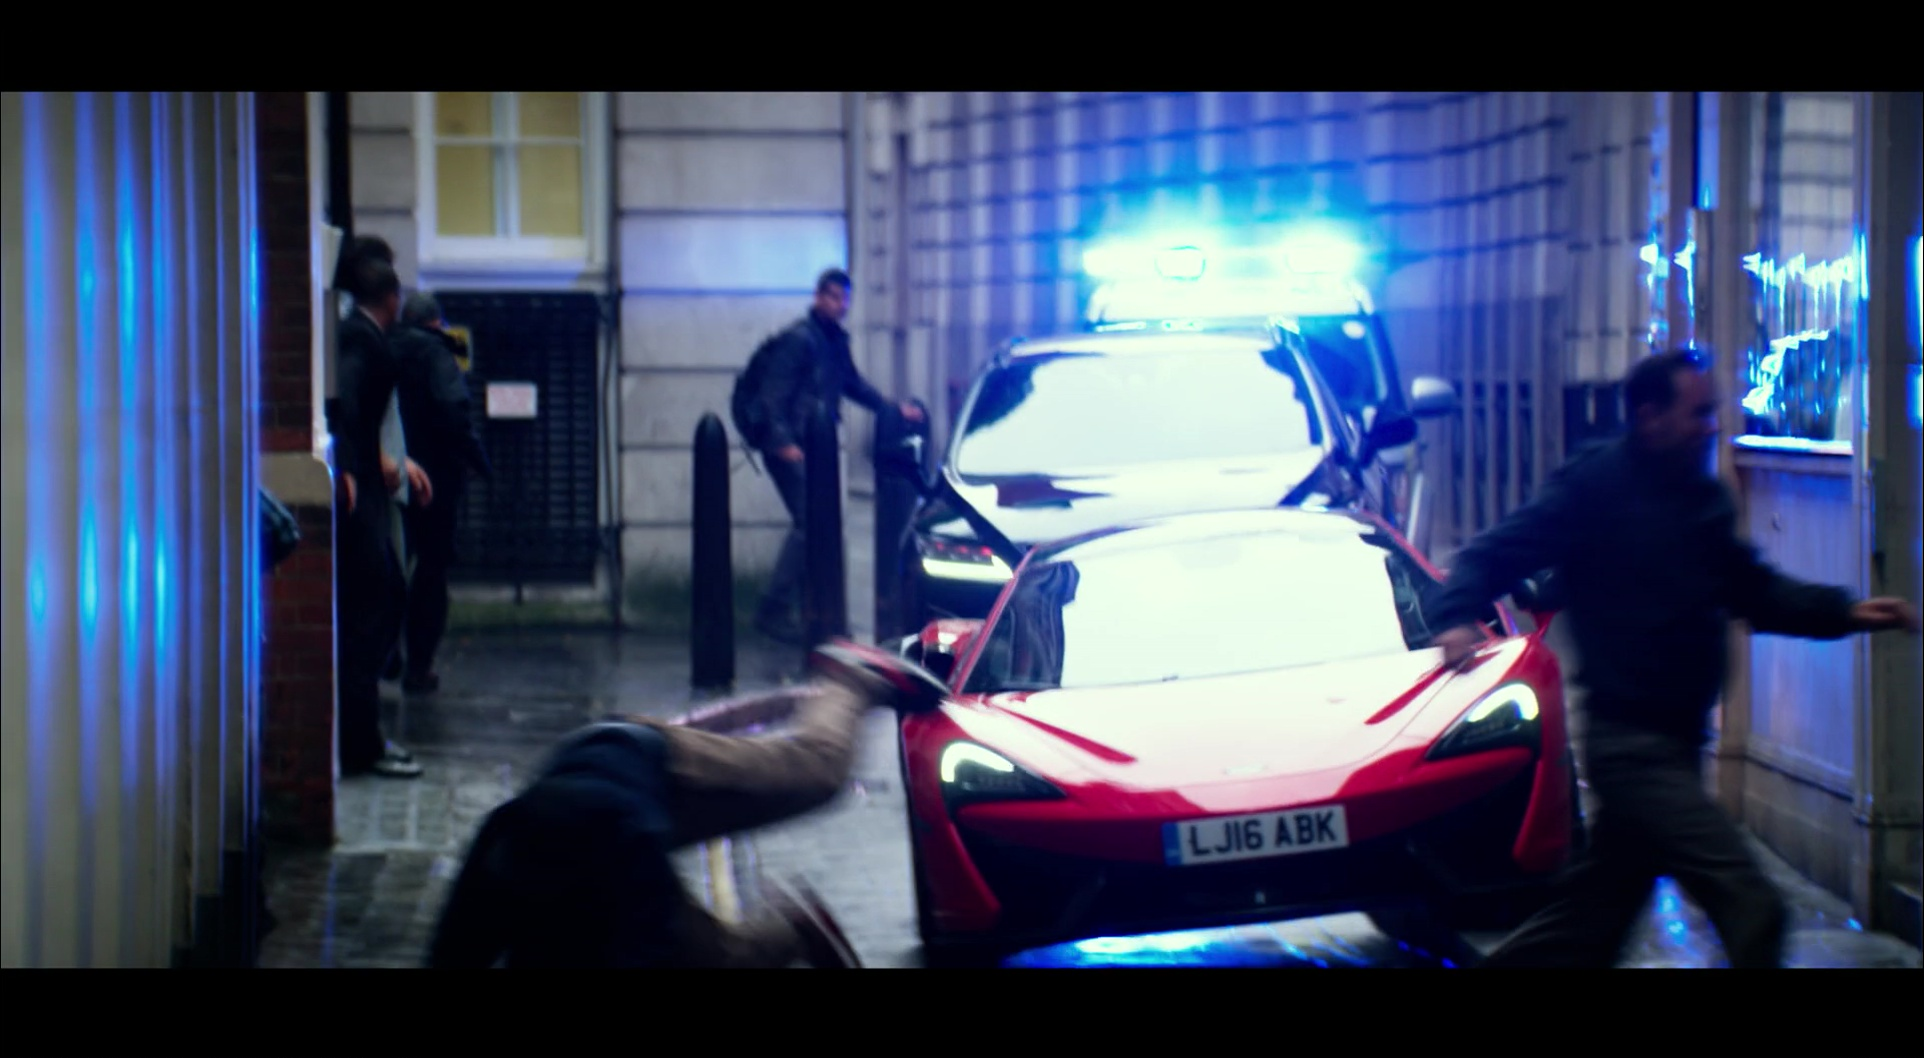 Sports Cars Used In The Movie Knight And Day